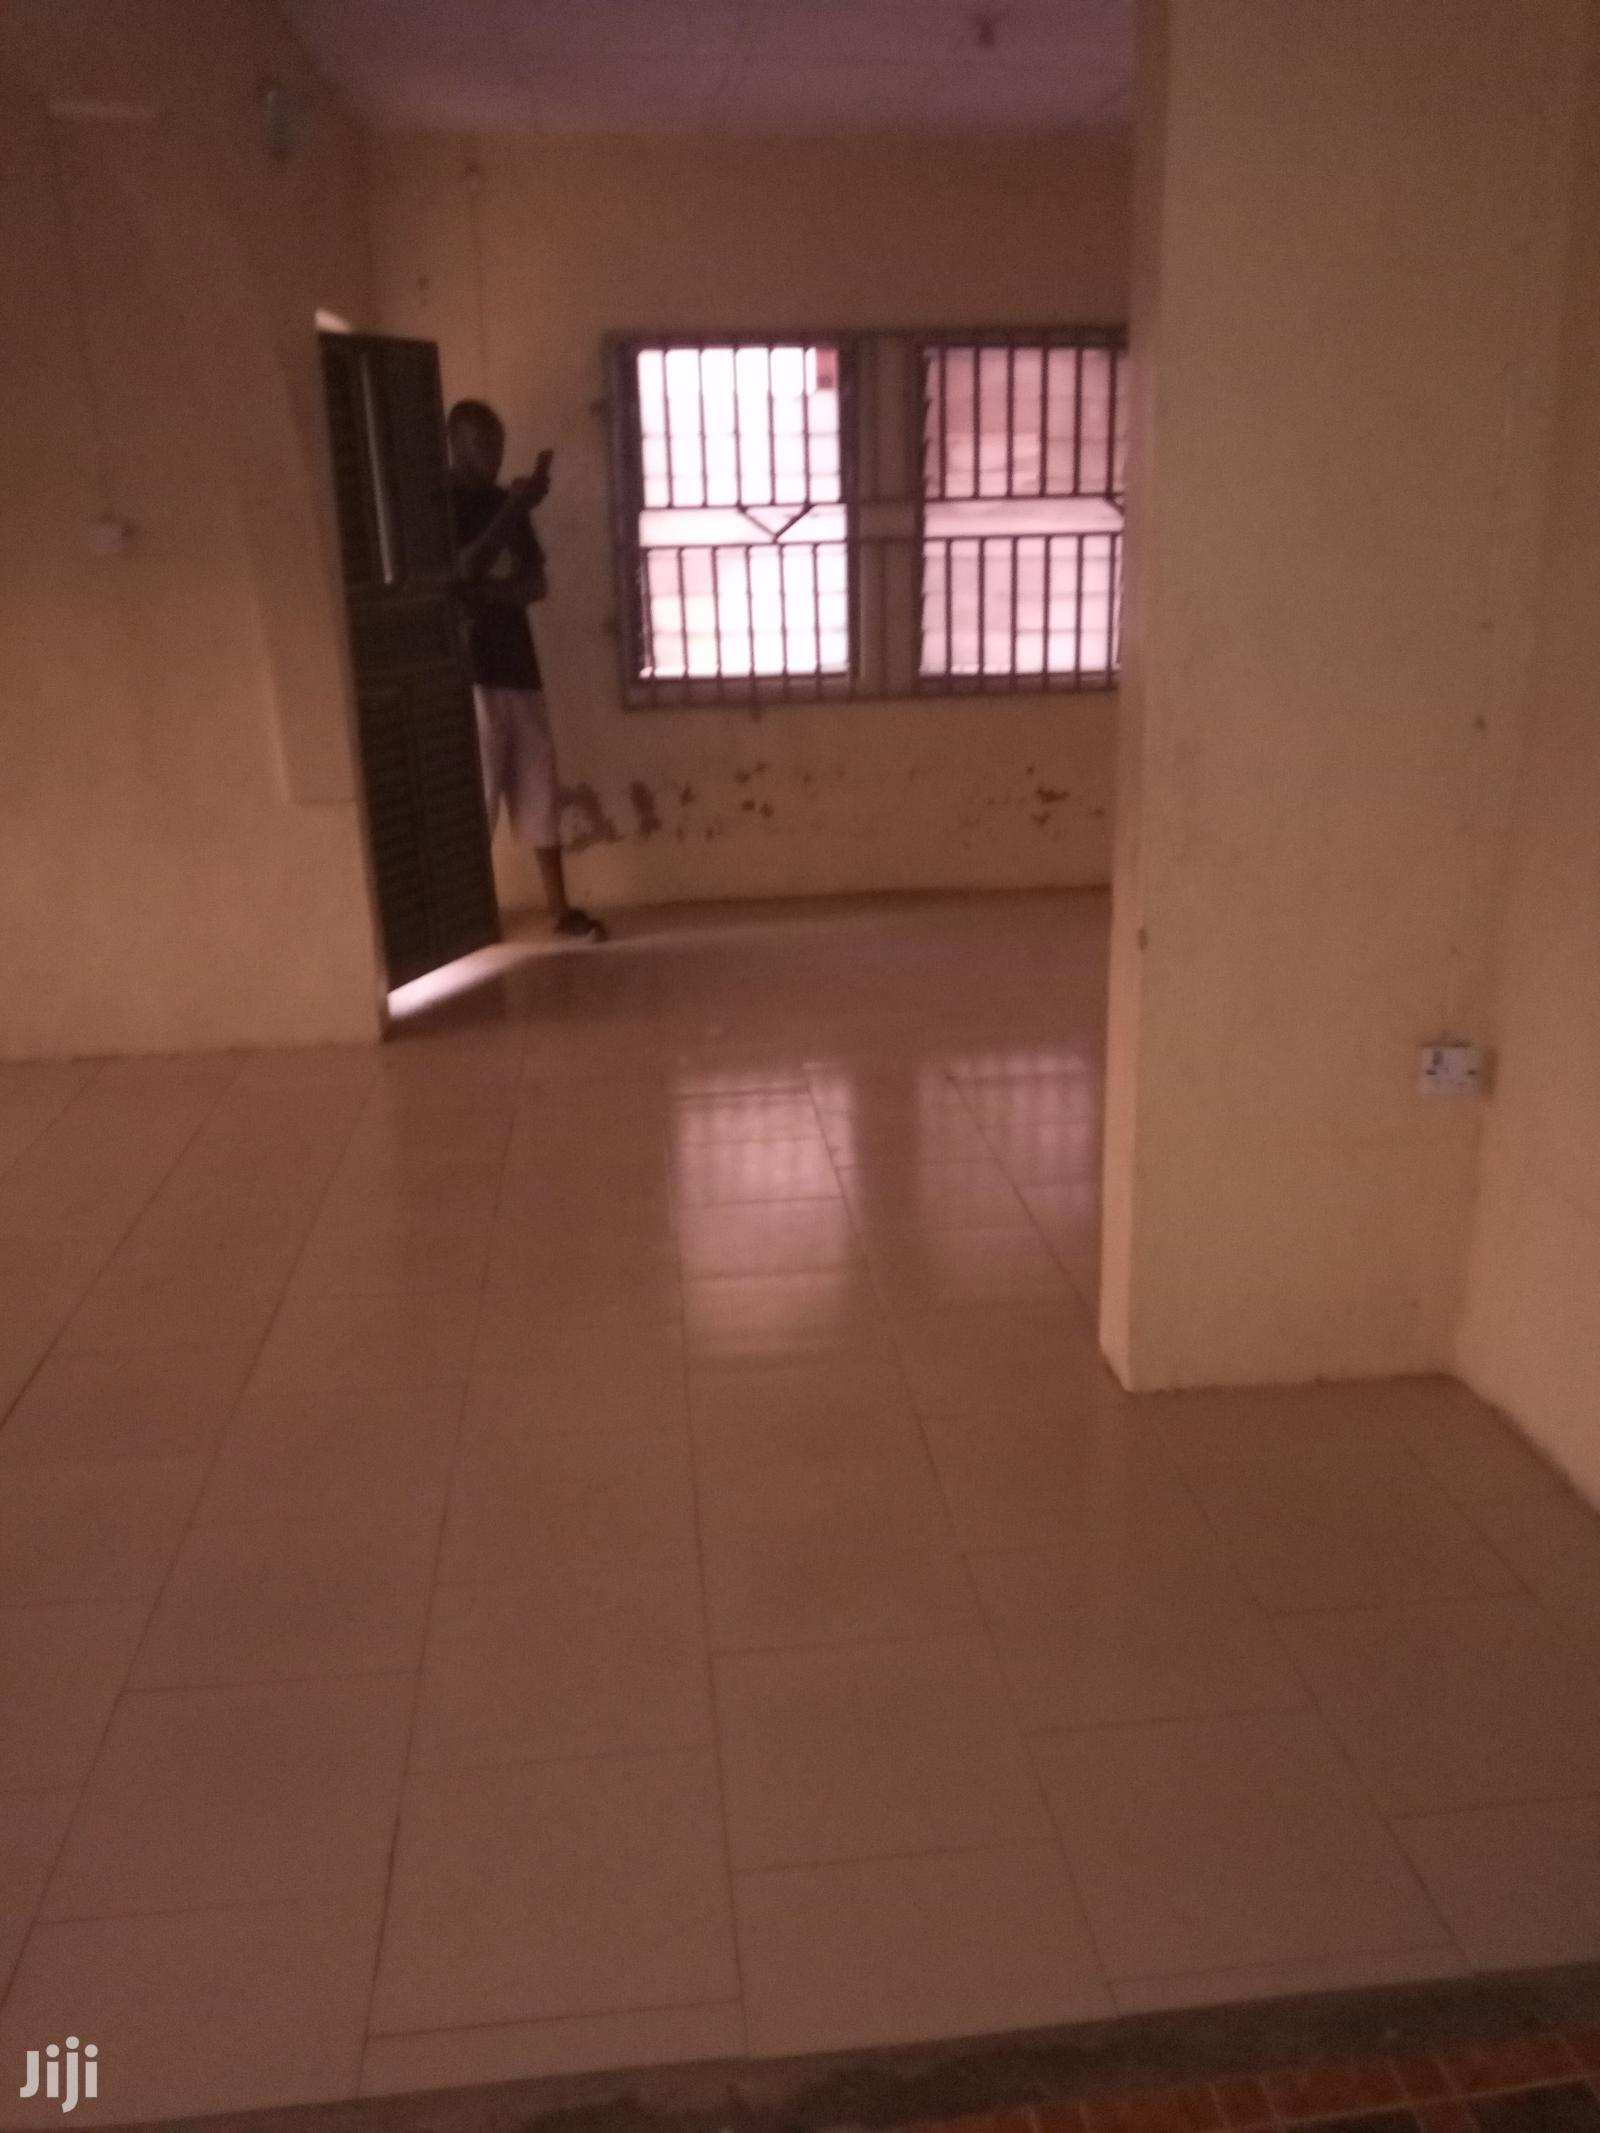 Archive: A Very Nice 3bedroom Flat In Ogbomoso For Fent